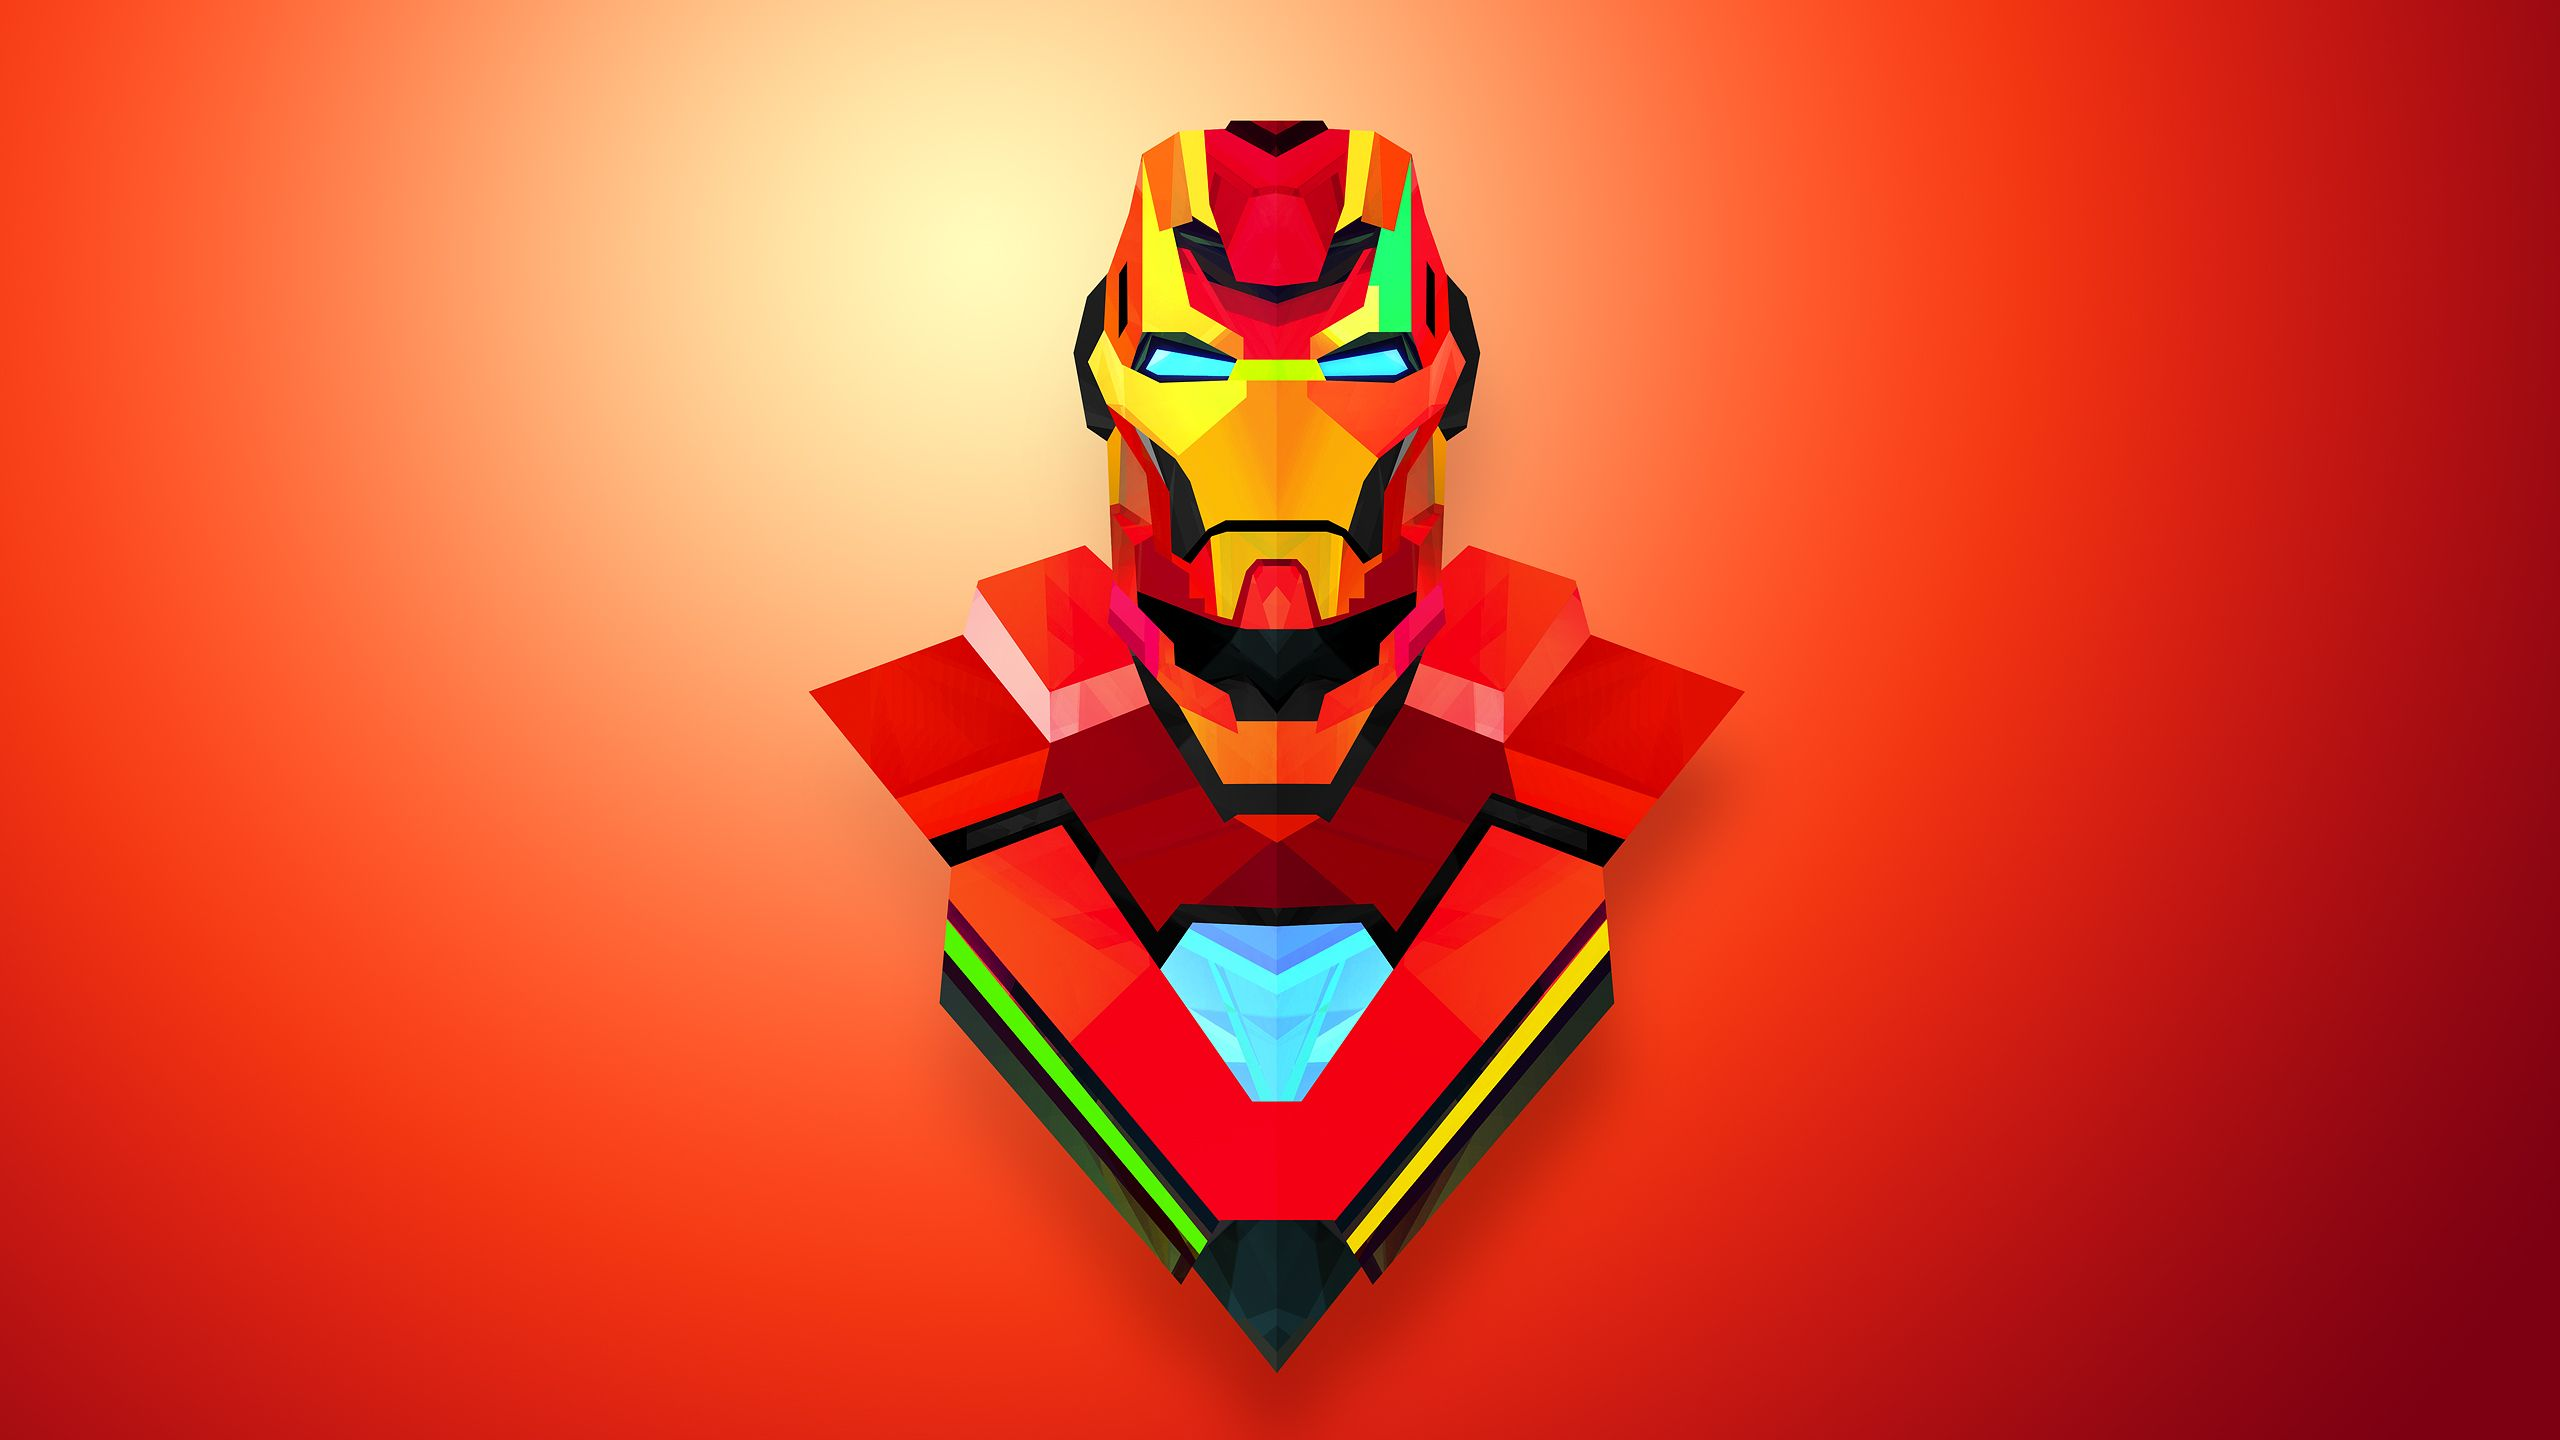 creative graphics - iron man | wallpaper and illustrations